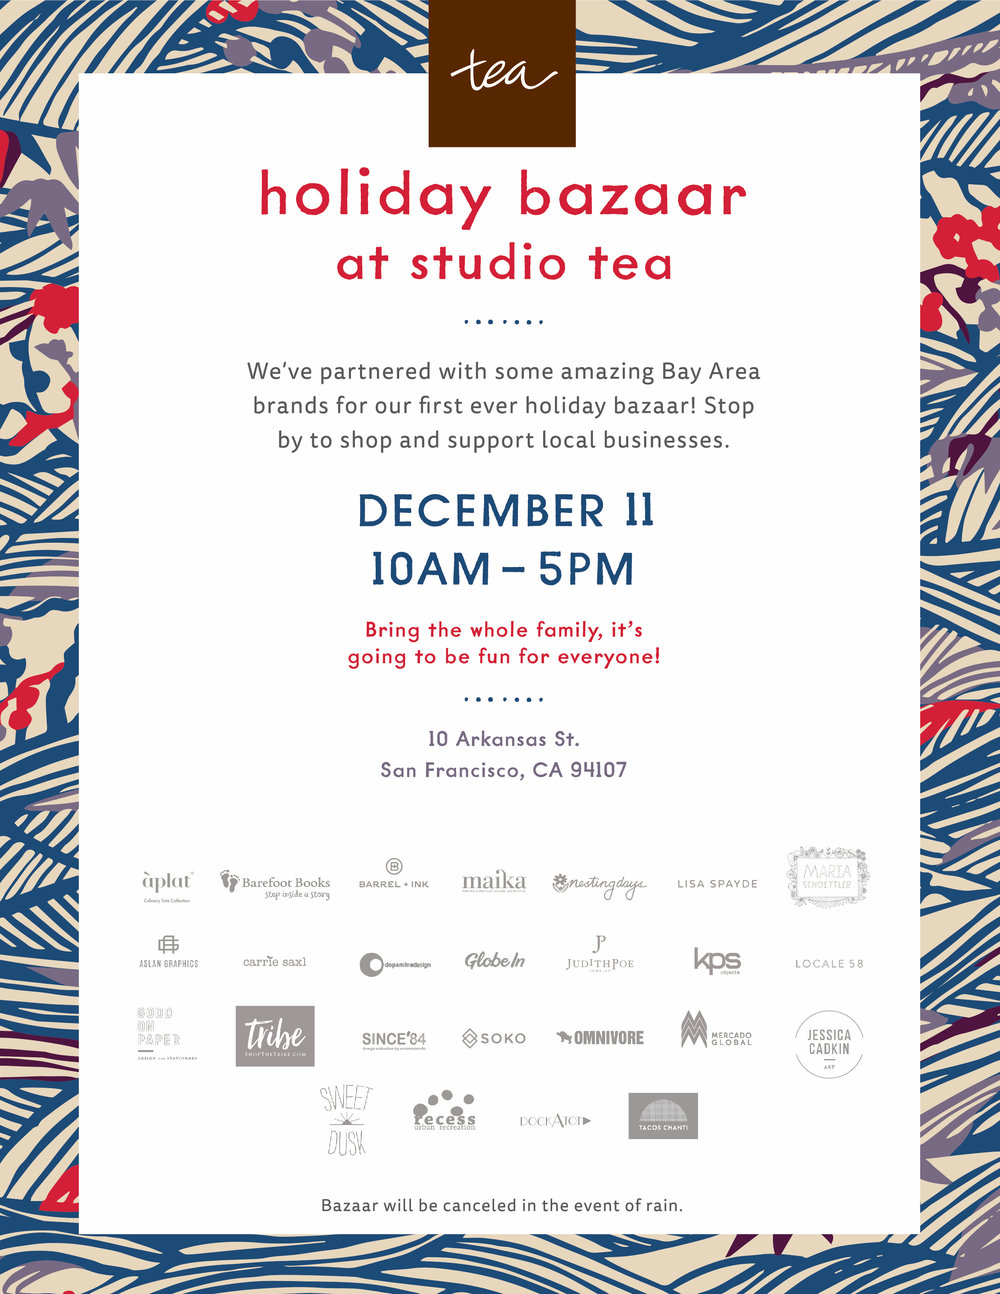 Studio Tea Holiday Bazaar: December 11th  /  www.goodonpaperdesign.com/blog/2016/12/5/studio-tea-holiday-bazaar-december-11th  /  @good_on_paper